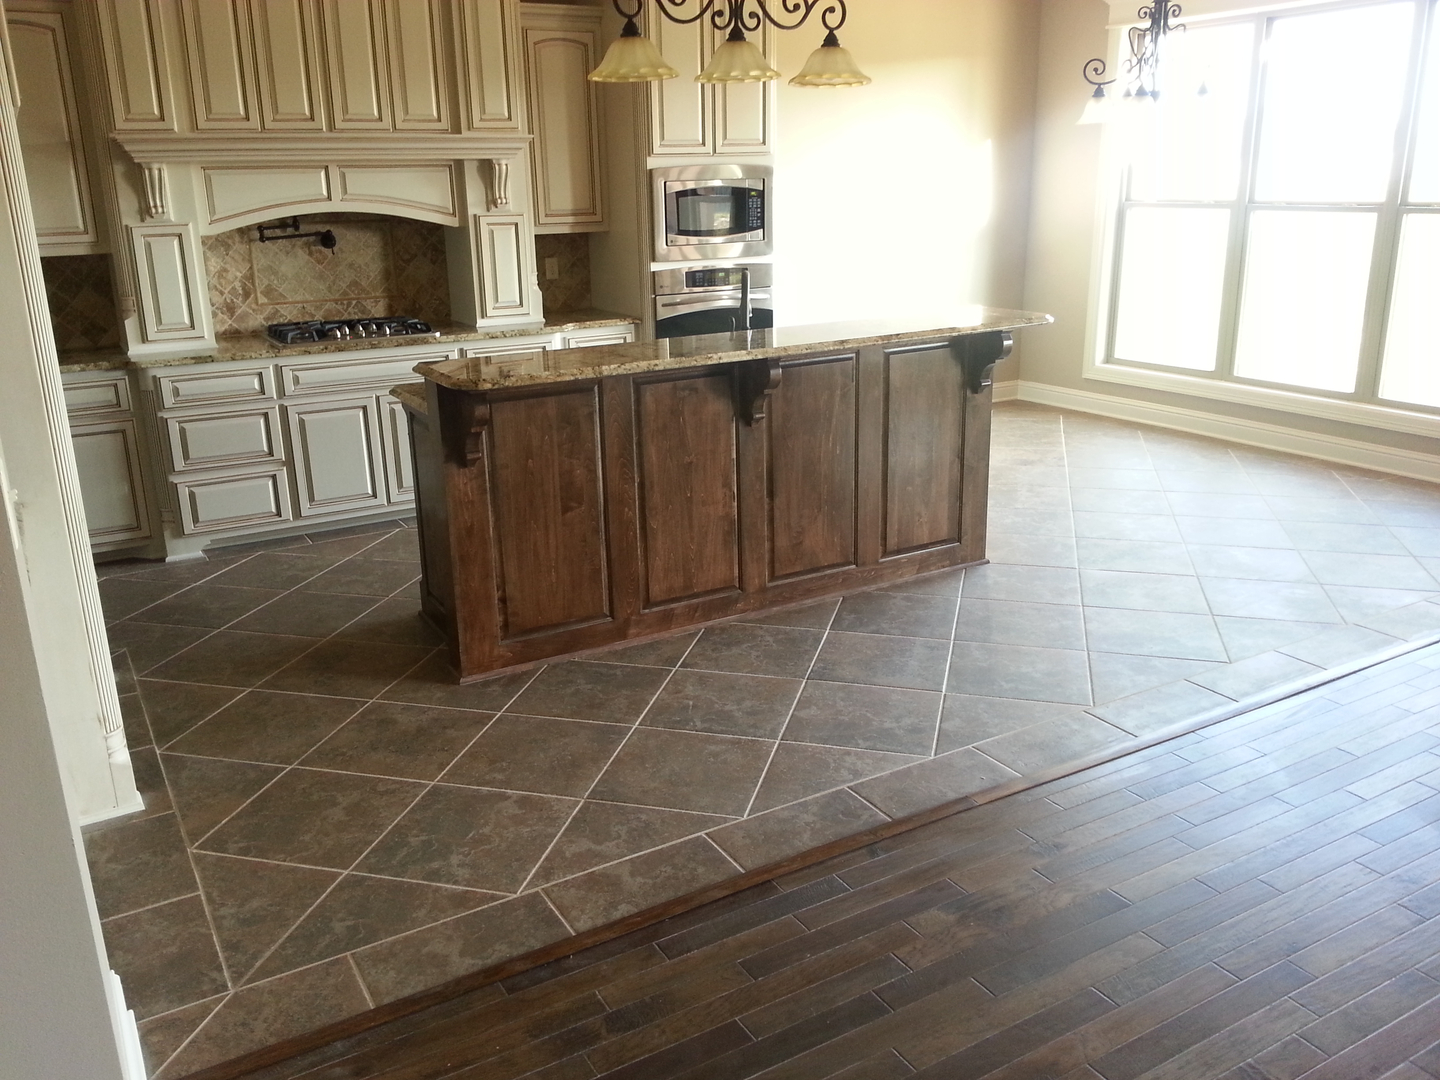 Holton Flooring & Interiors LLC. - Tile, Wood Flooring, Wood Floor ...